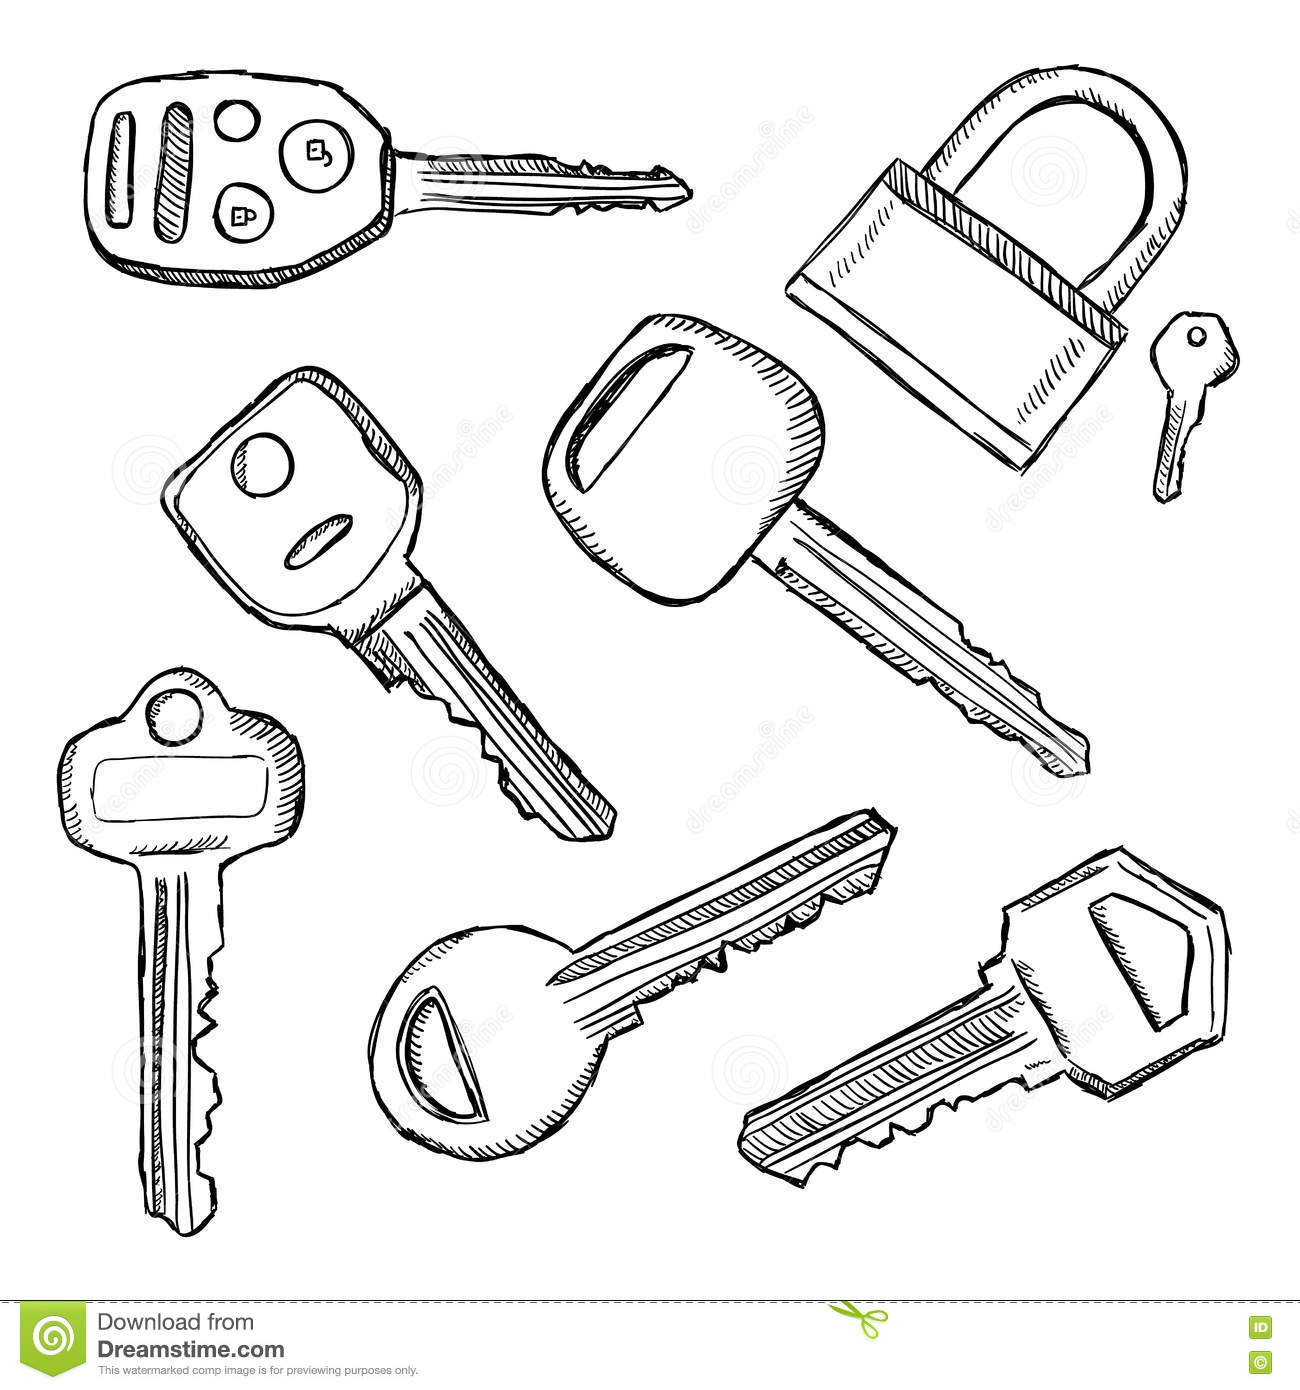 Colorful Patio Chairs Bufferedbreakoutbox Basiccircuit Circuit Diagram Seekiccom House Car Keys Doodle Key Doodles Illustration Hand Drawn 75613682